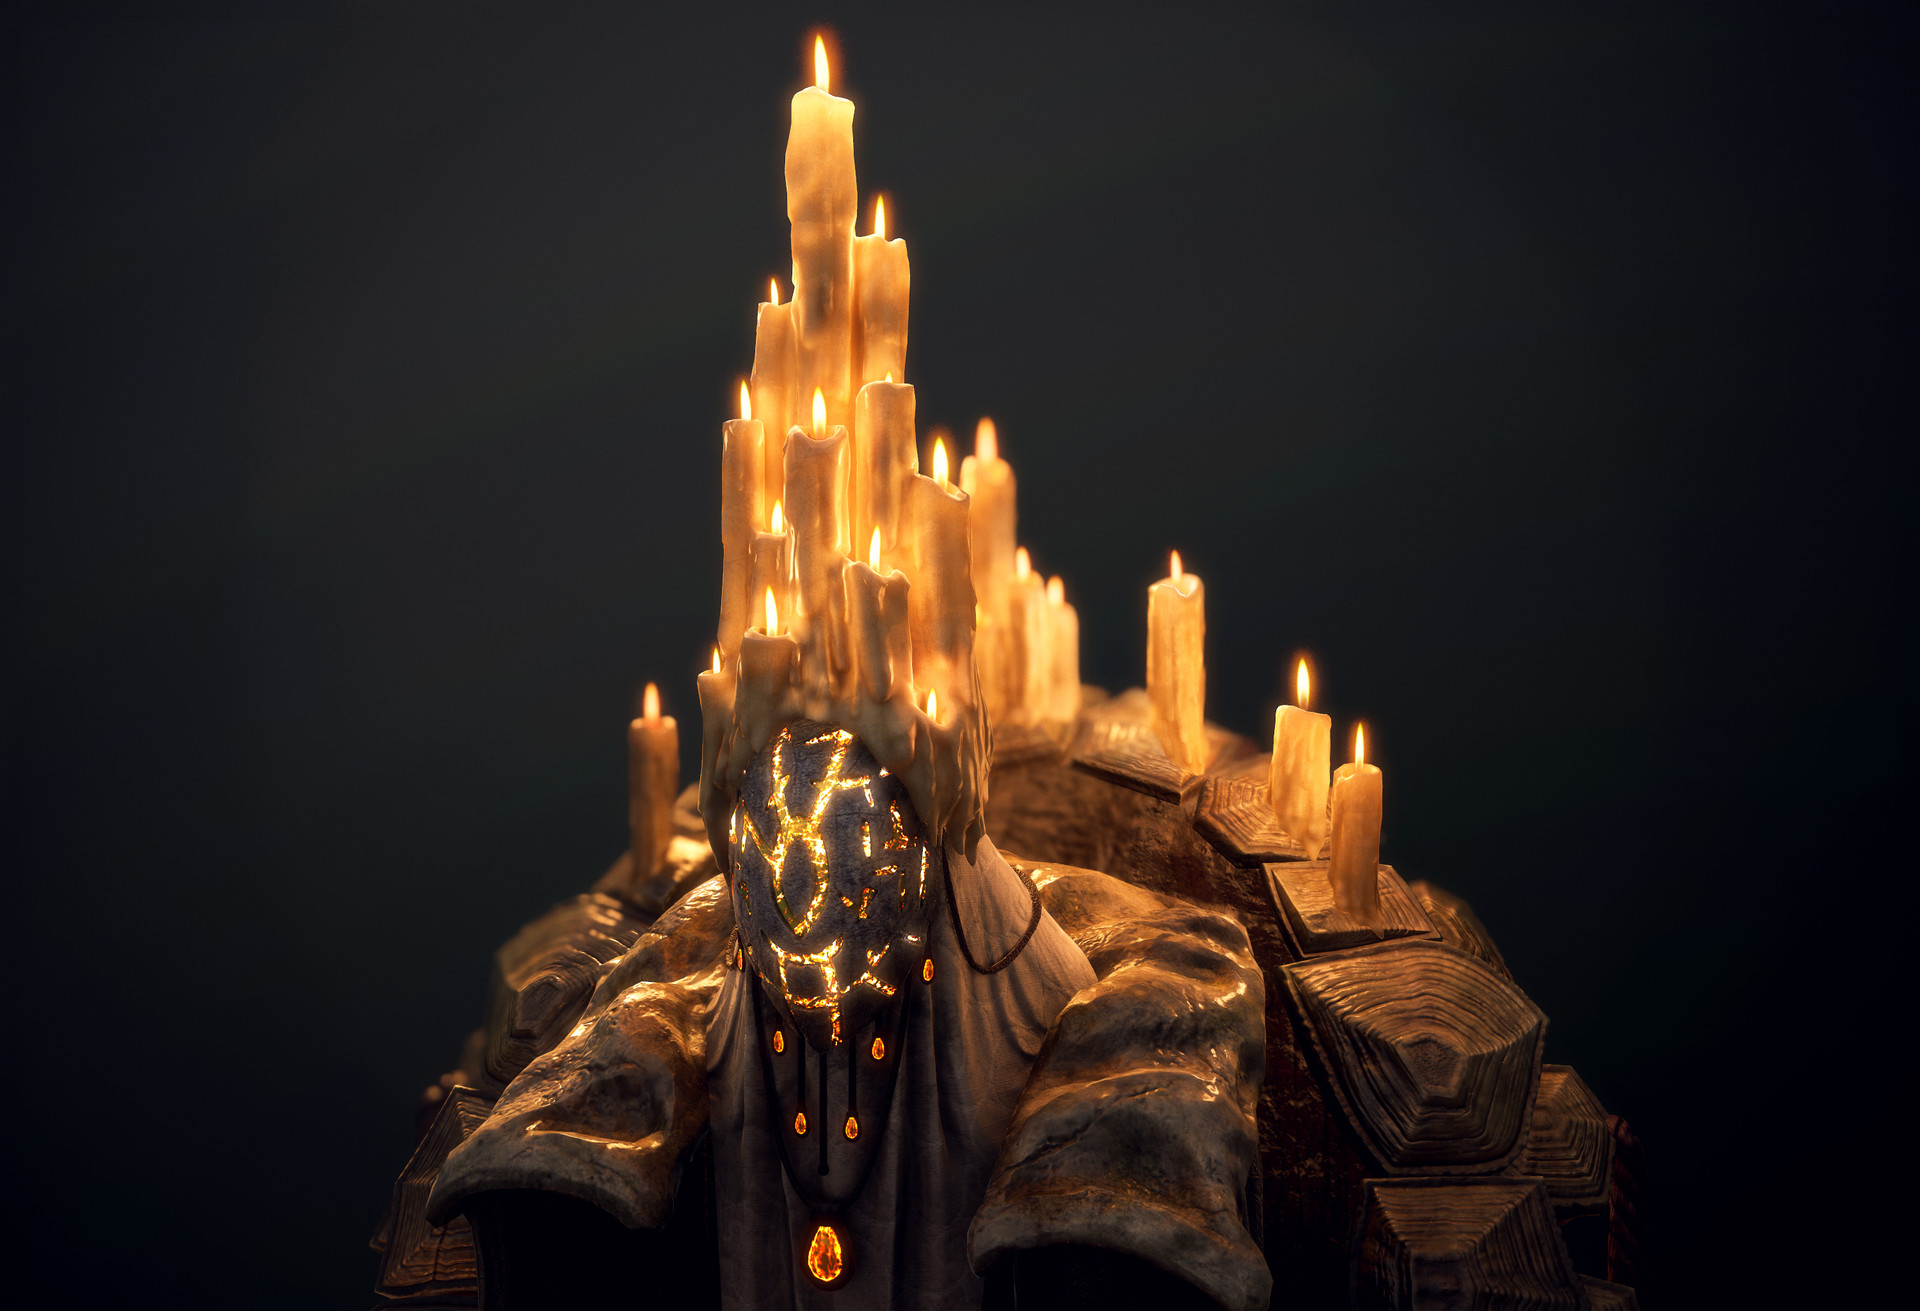 Render with just the candle lights on